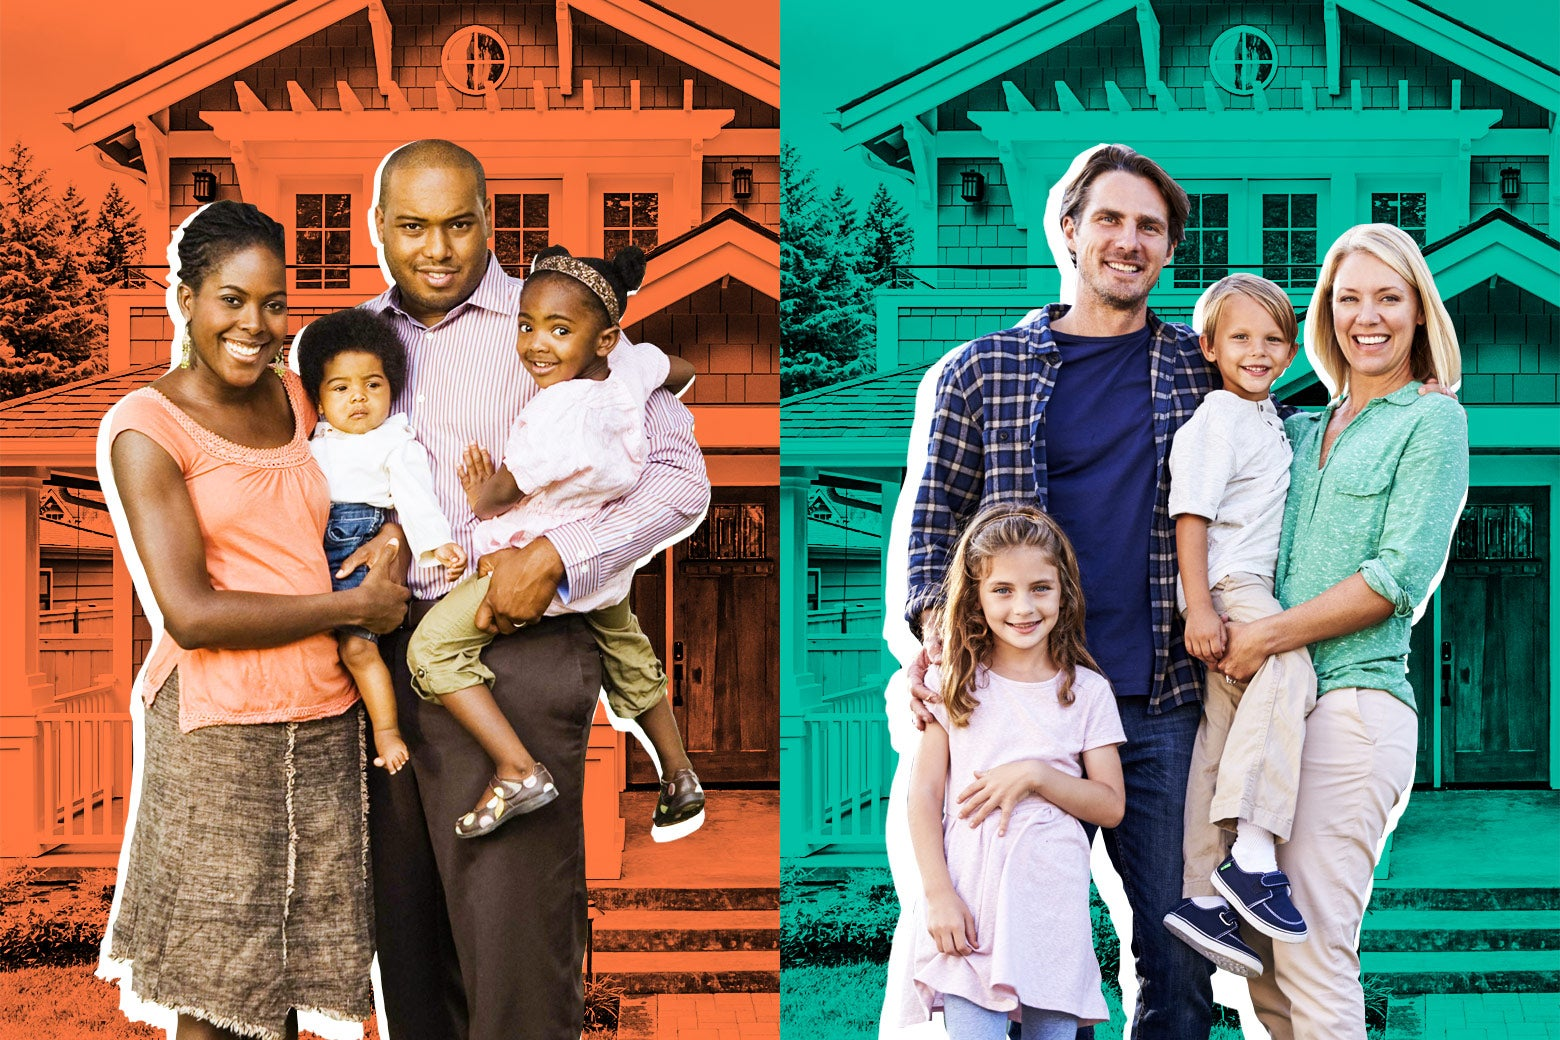 Diptych of a black family in front of a suburban house and a white family in front of the same suburban house.